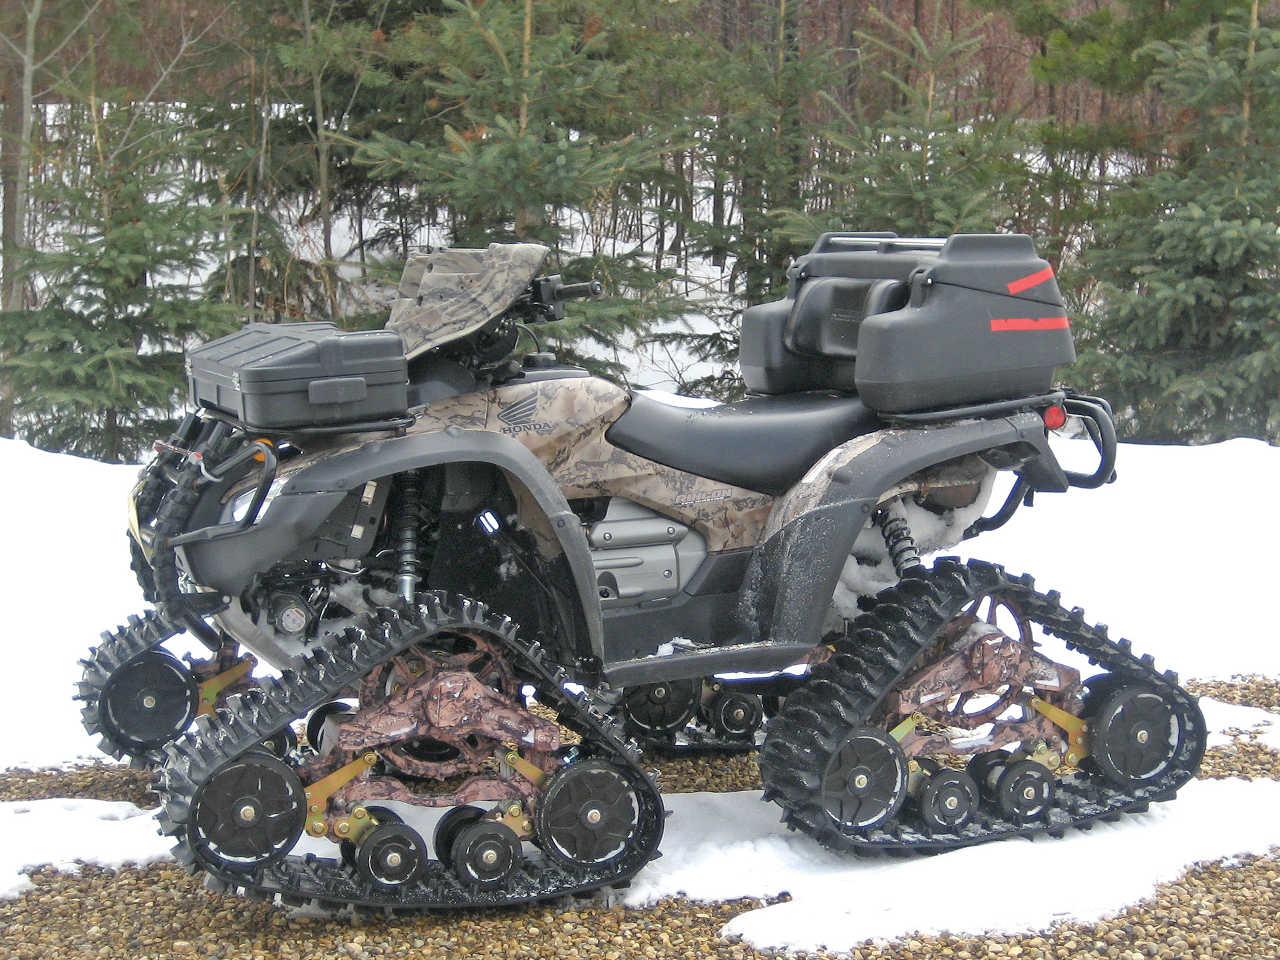 Track Systems For Atv Tracks For Atvs as Well